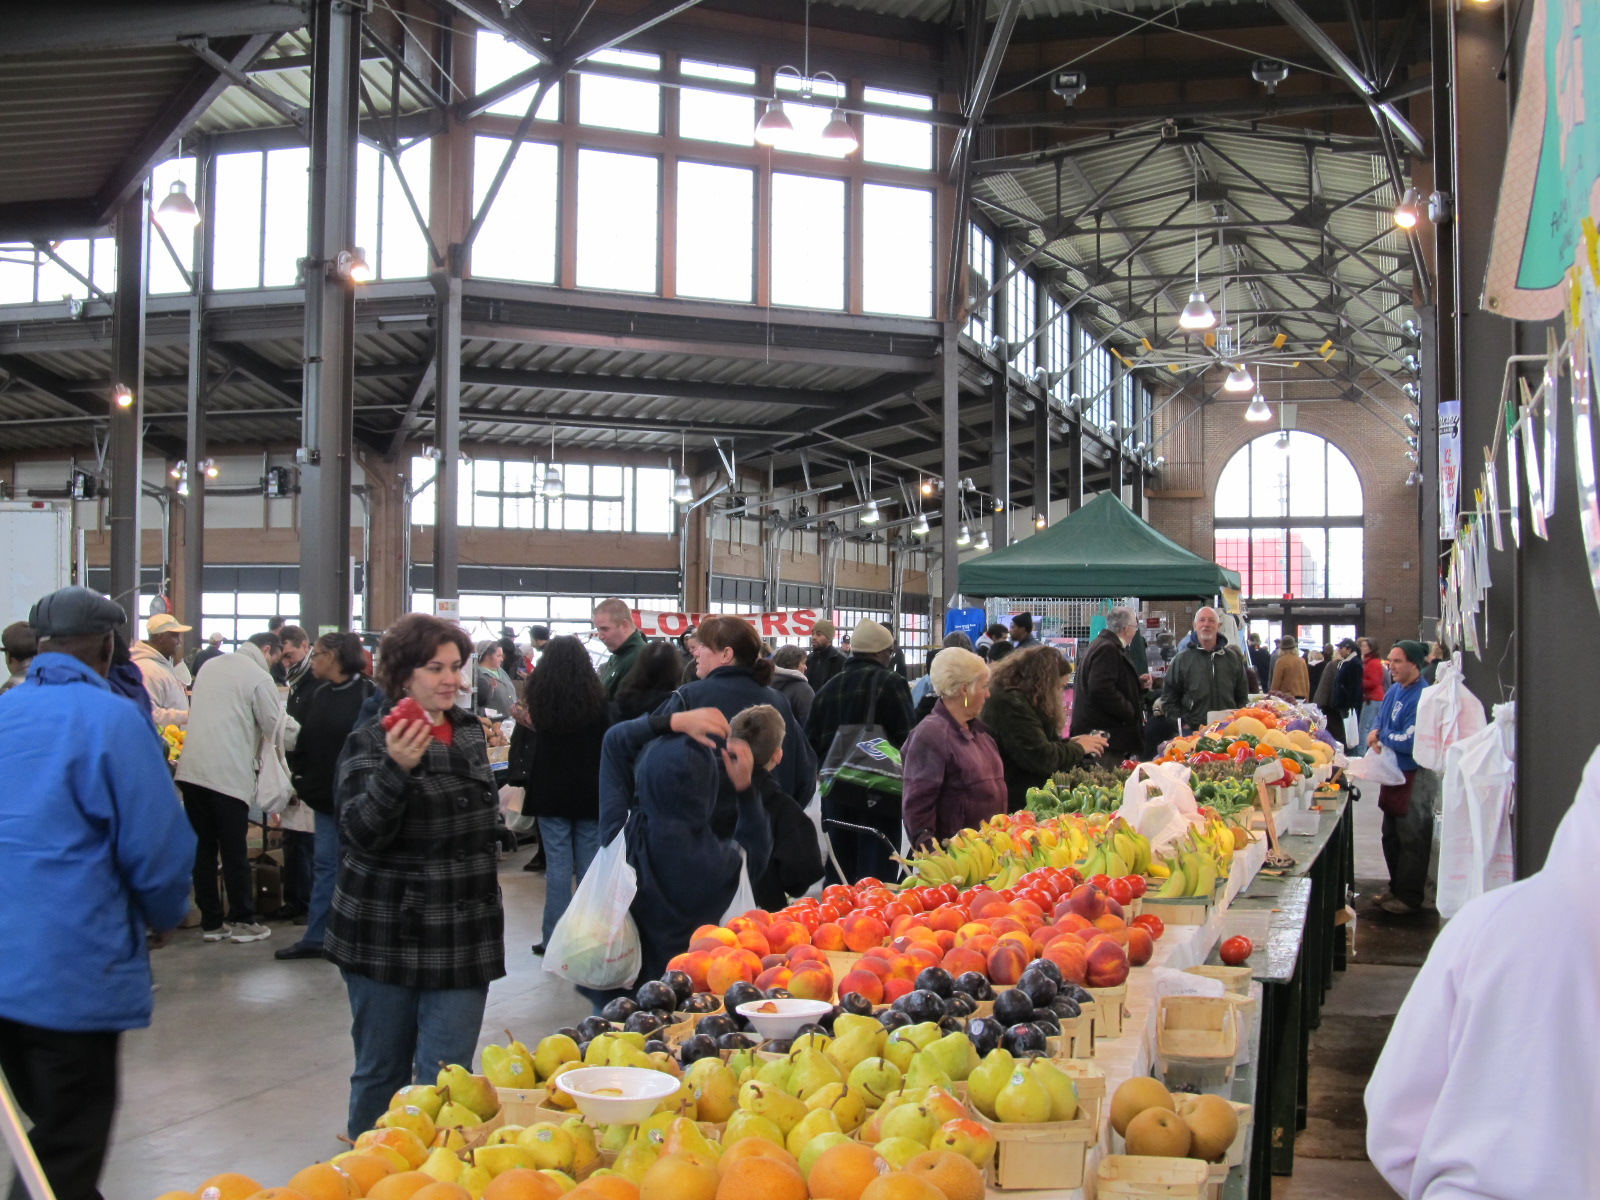 Eastern market events in Detroit, MI